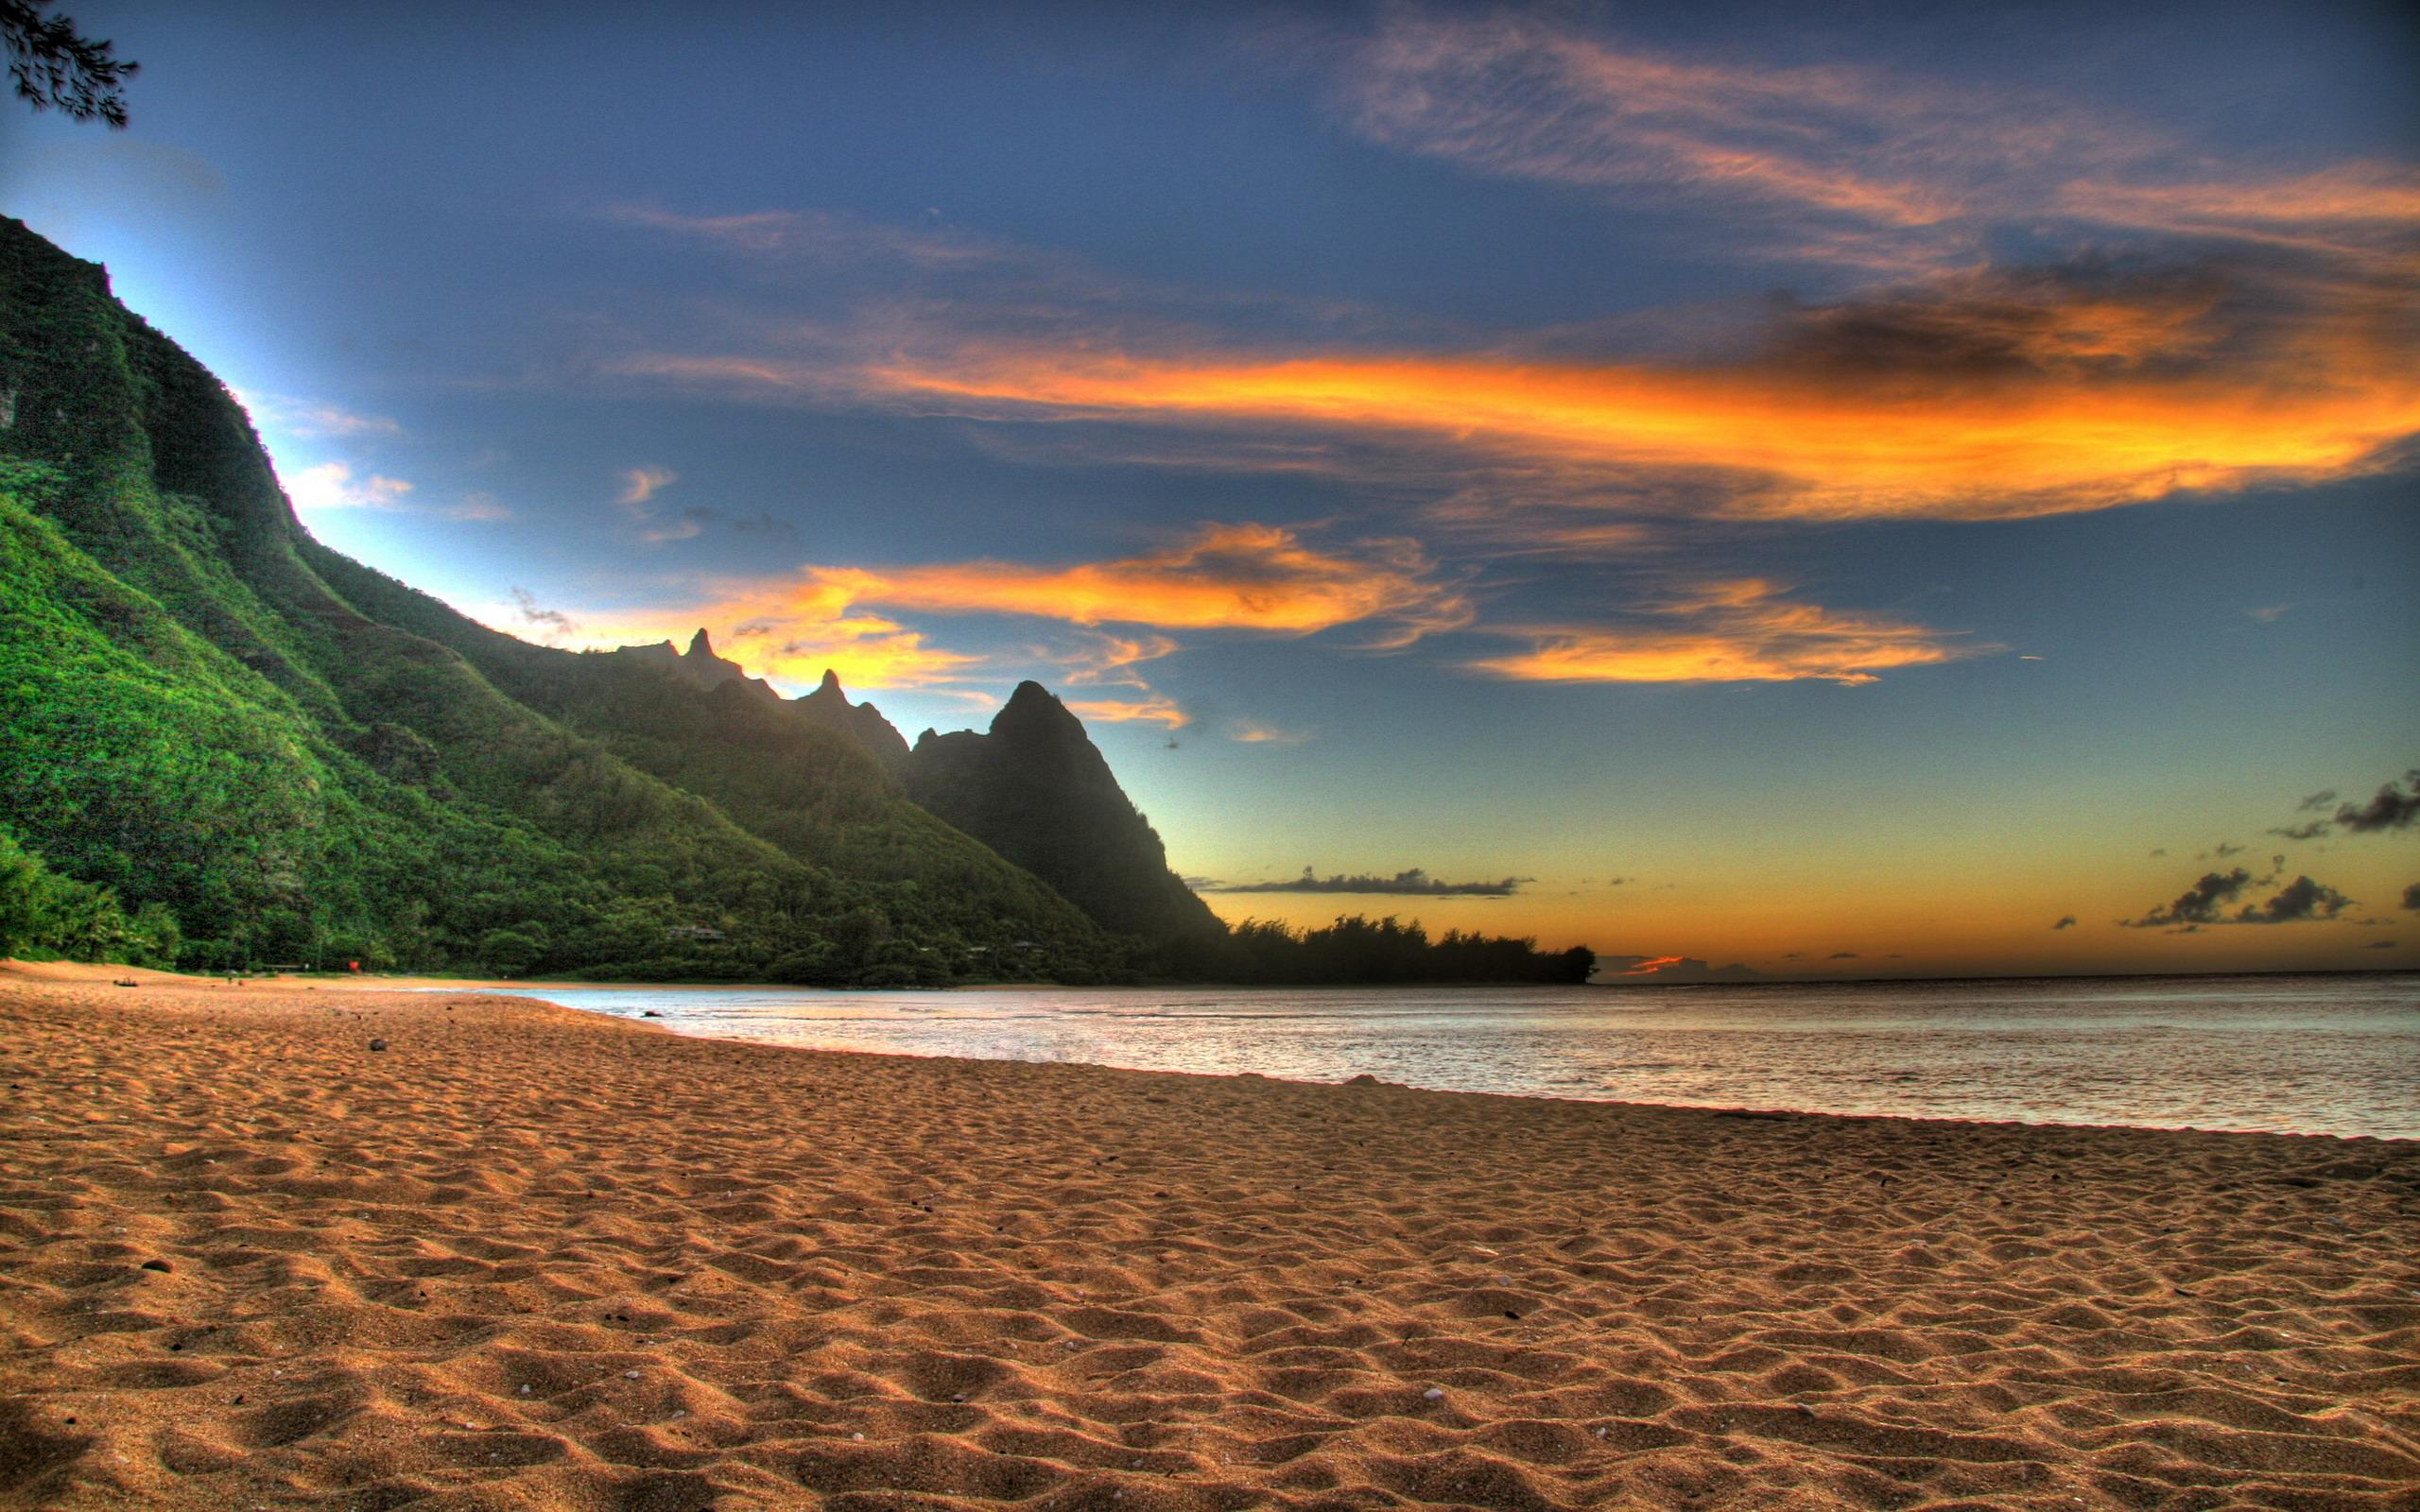 Beach Sunset Wallpaper Desktop Windows #2364 Wallpaper ...